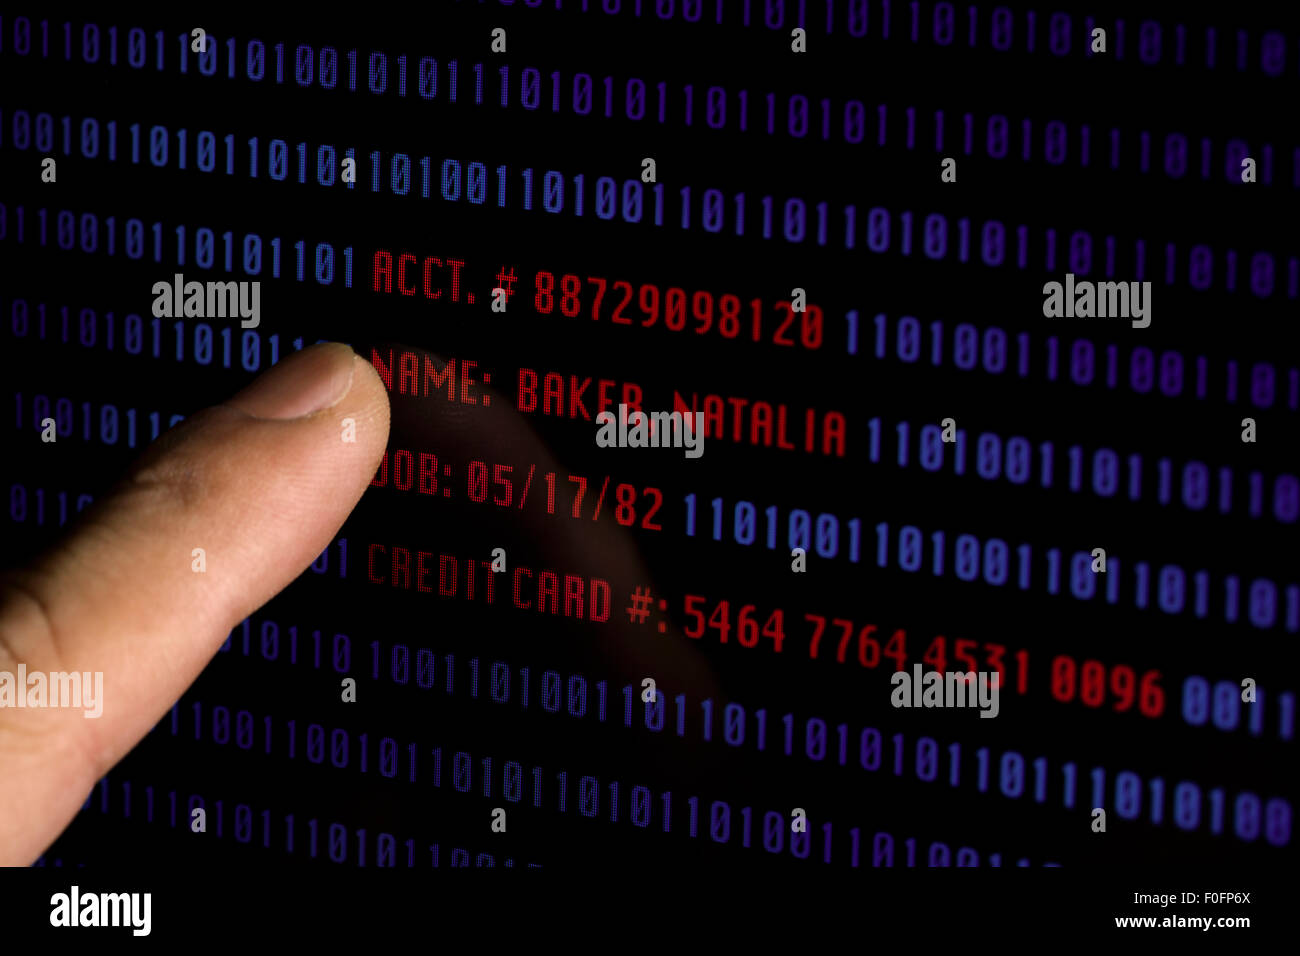 Man pointing to personal and sensitive information on computer screen (information is fictional) - Stock Image